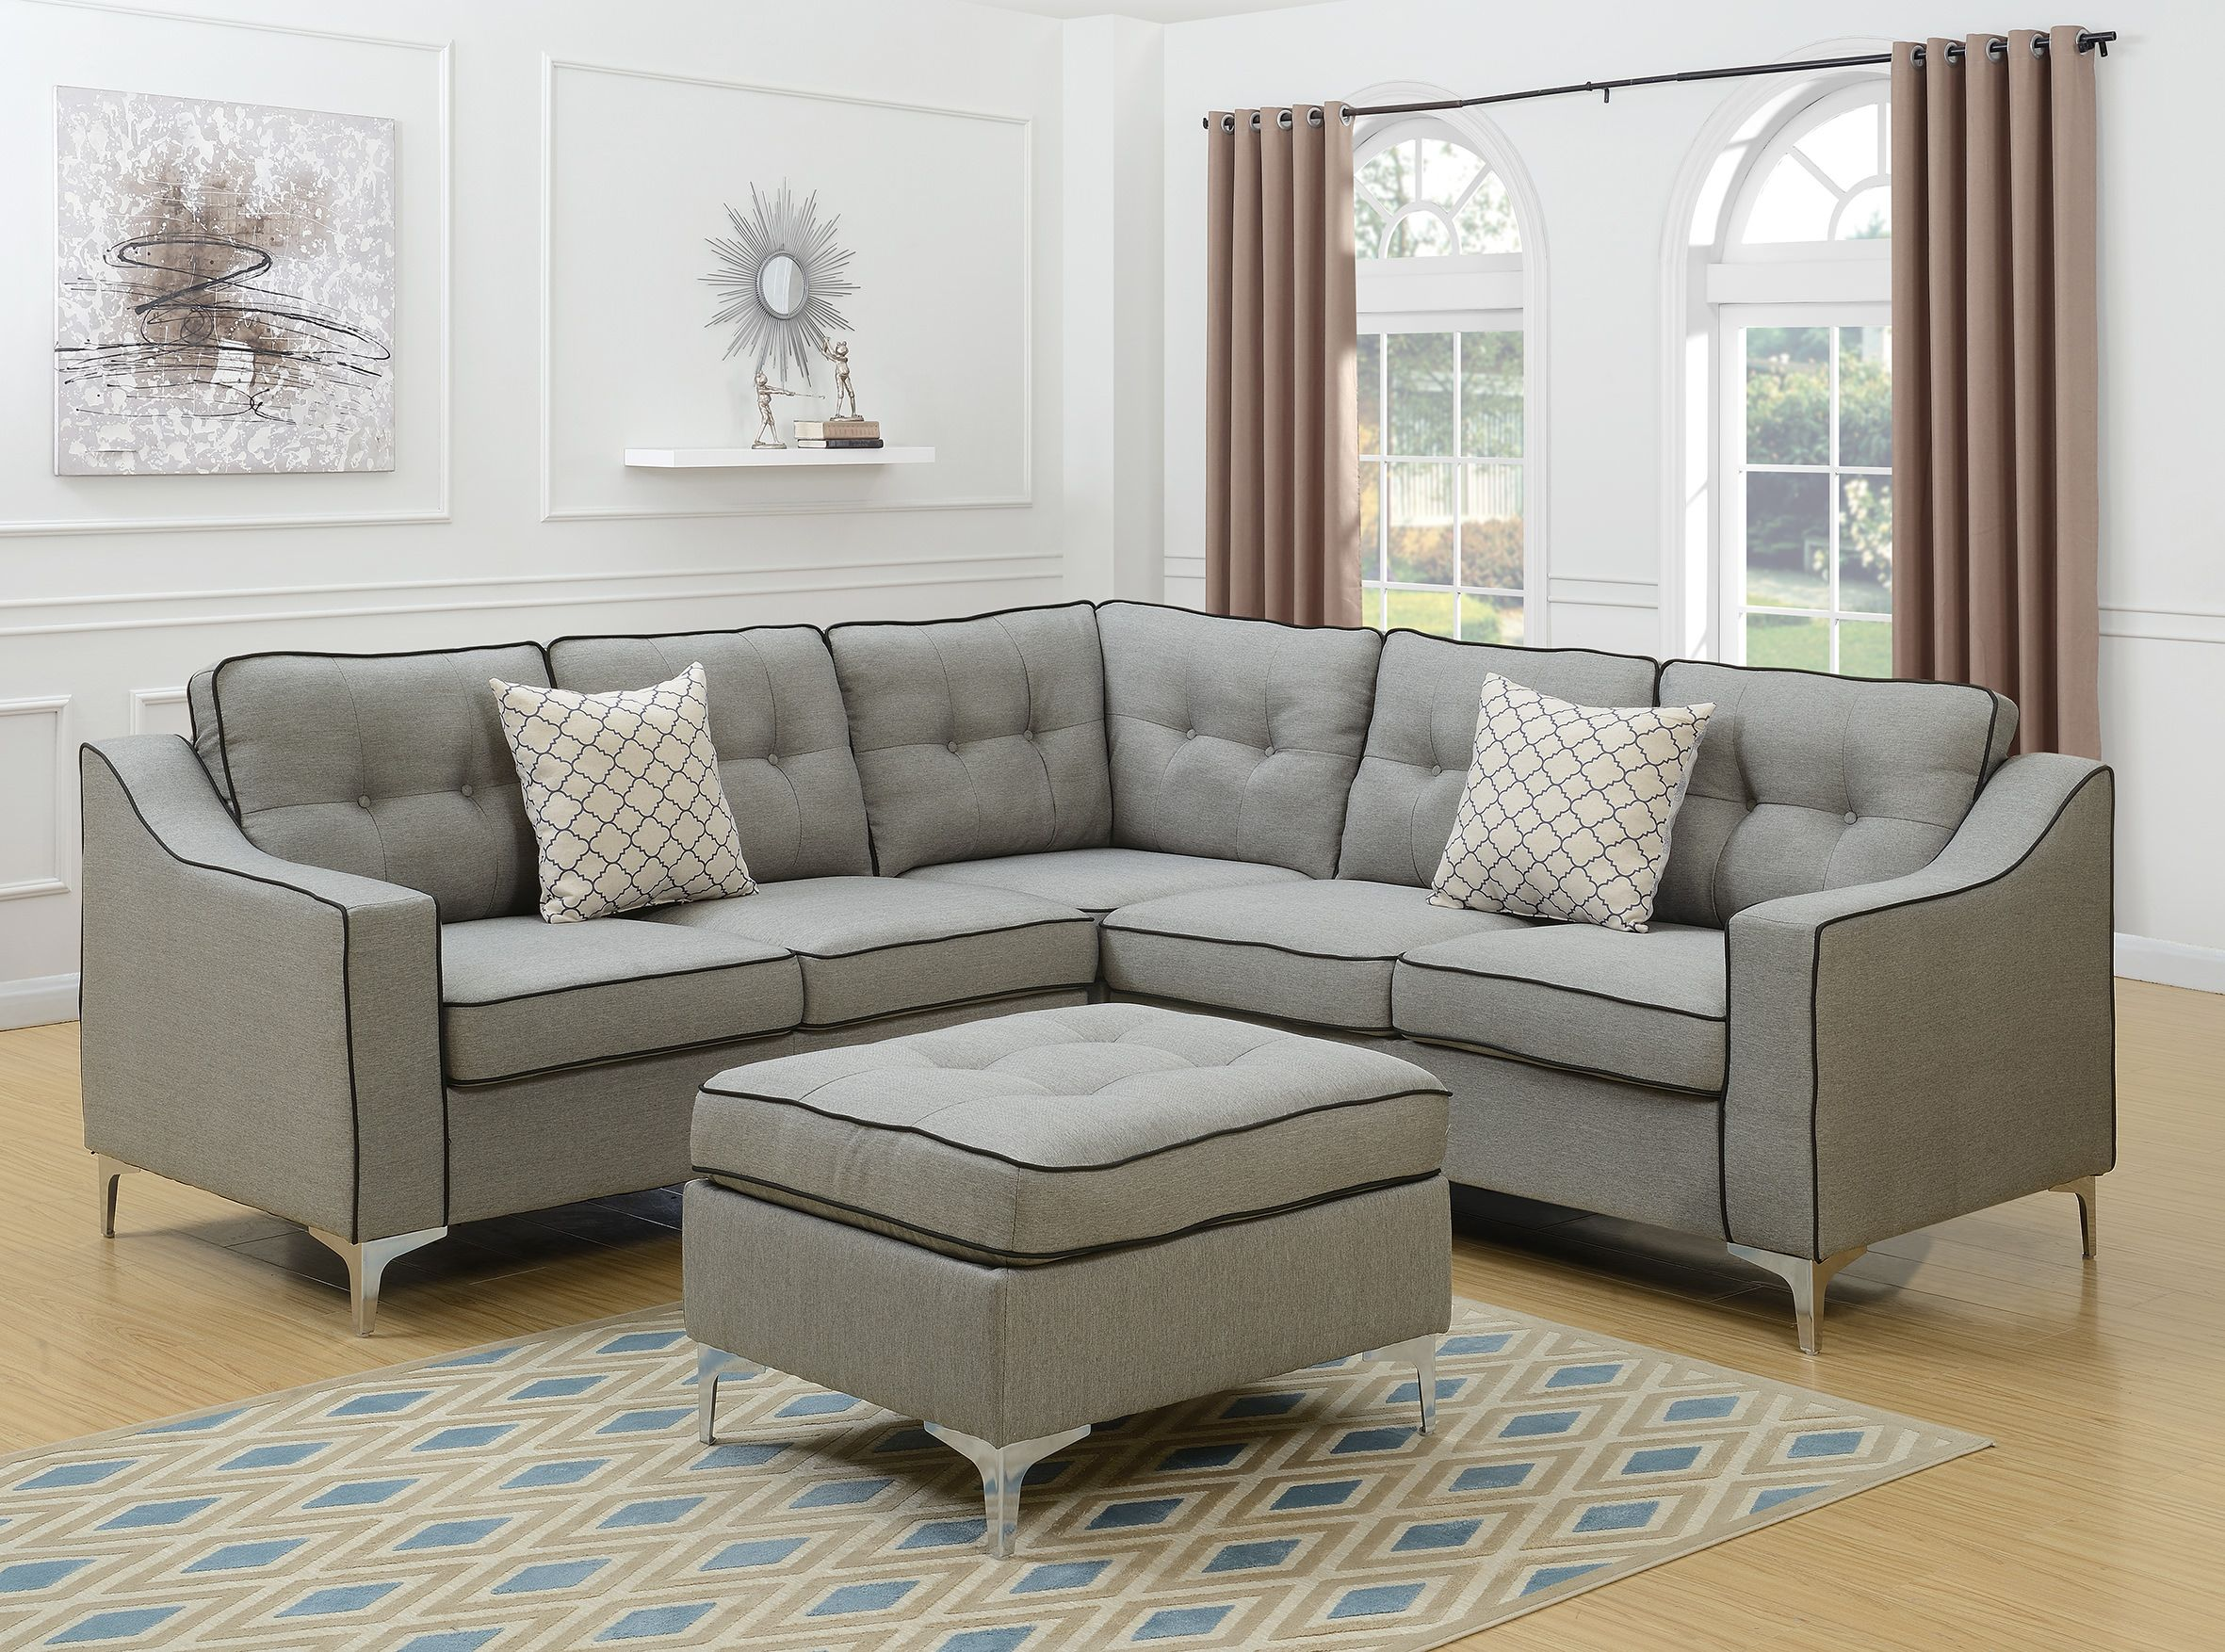 F6998 4 Pcs Sectional A B C D Light Grey Modular Sectional Sofa Grey Sectional Sofa Living Room Sets